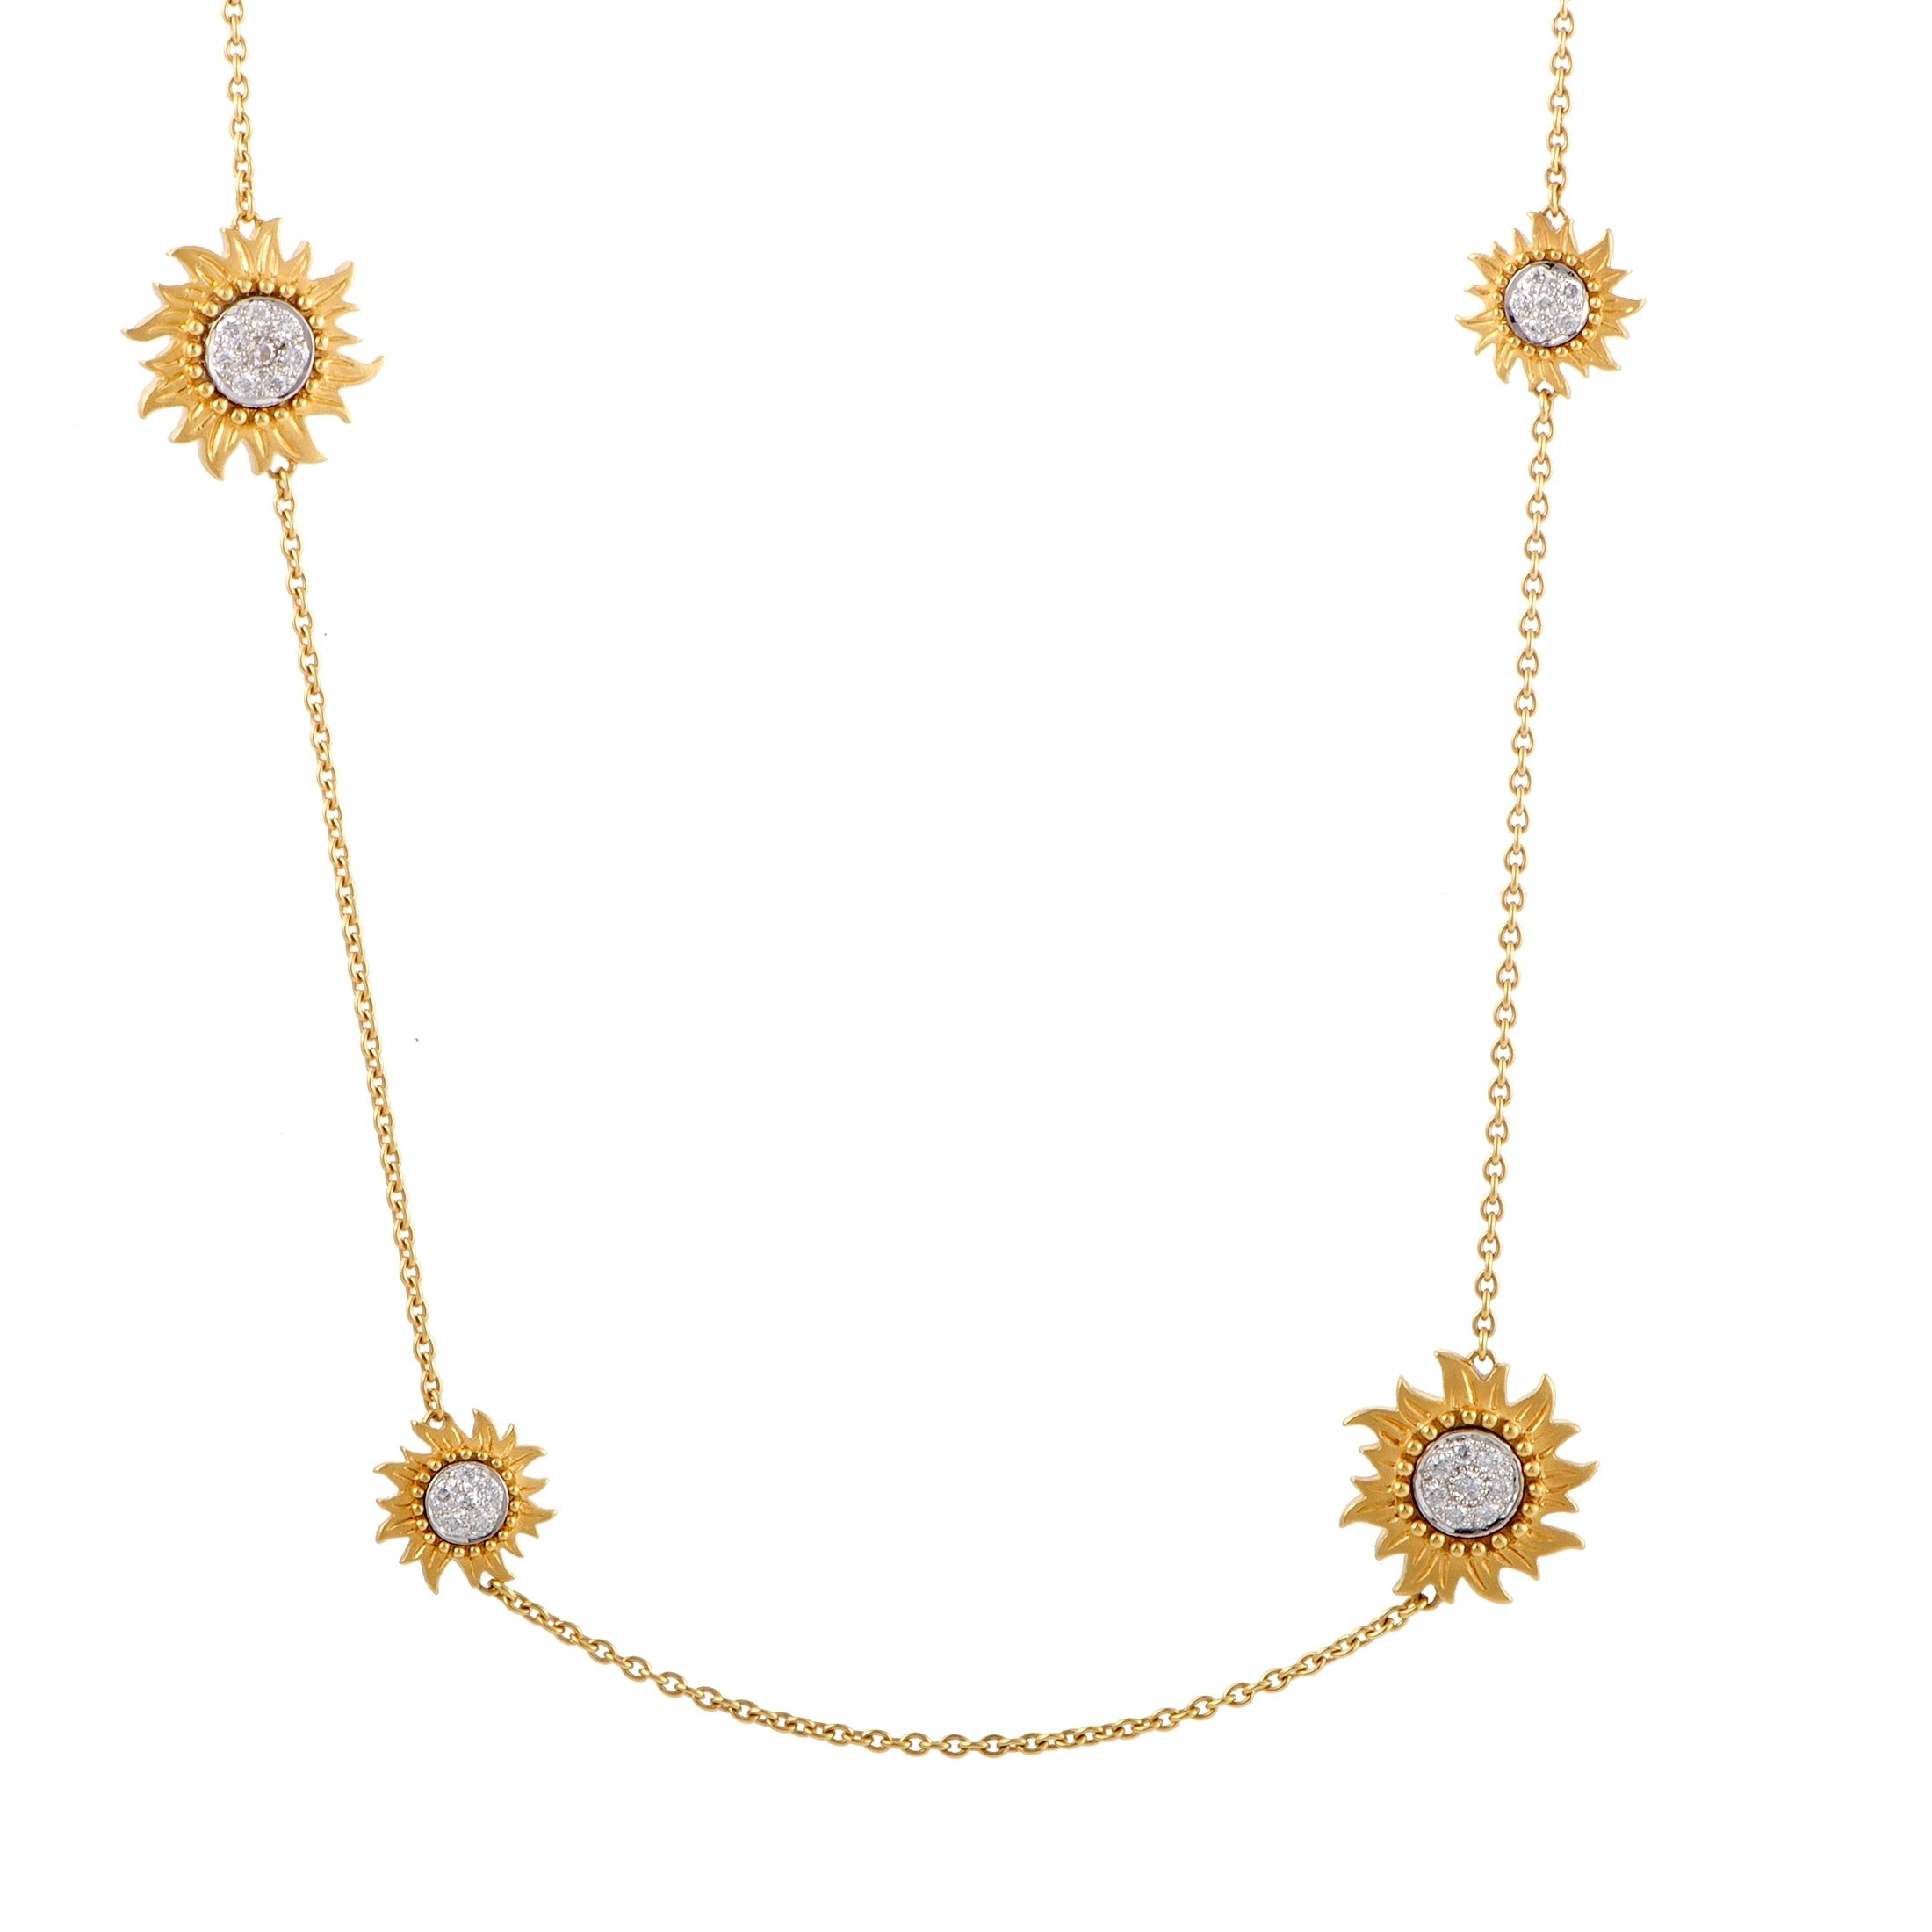 Sol Y Sombra Yellow And White Gold Diamond Pave Sautoir Necklace Throughout Newest Diamond Sautoir Necklaces In Yellow Gold (View 25 of 25)